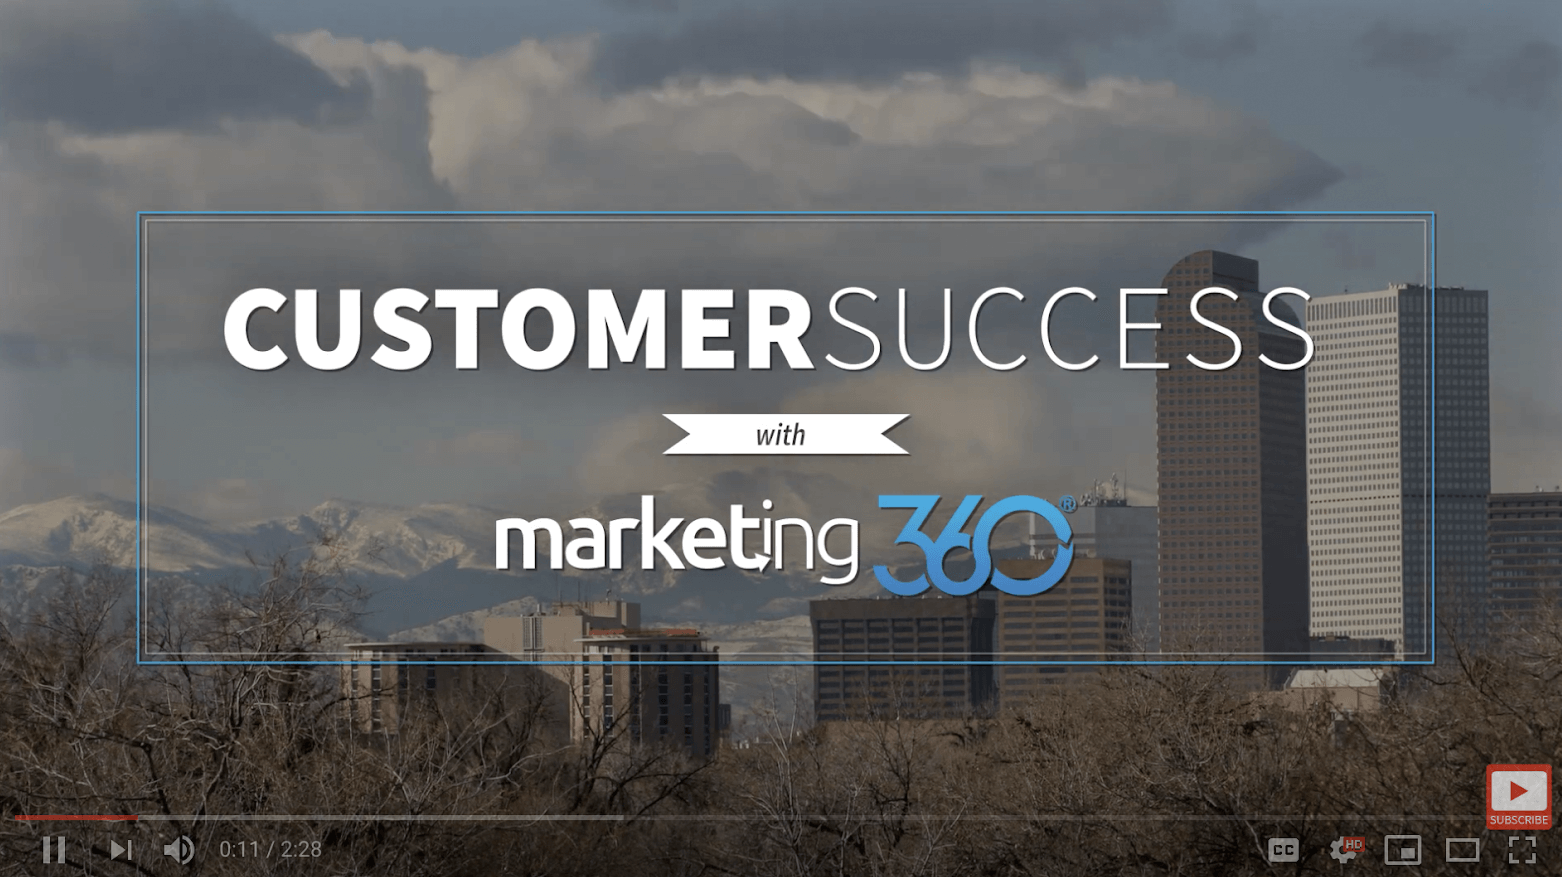 Screenshot of the Customer Success with Marketing 360 from Liftech